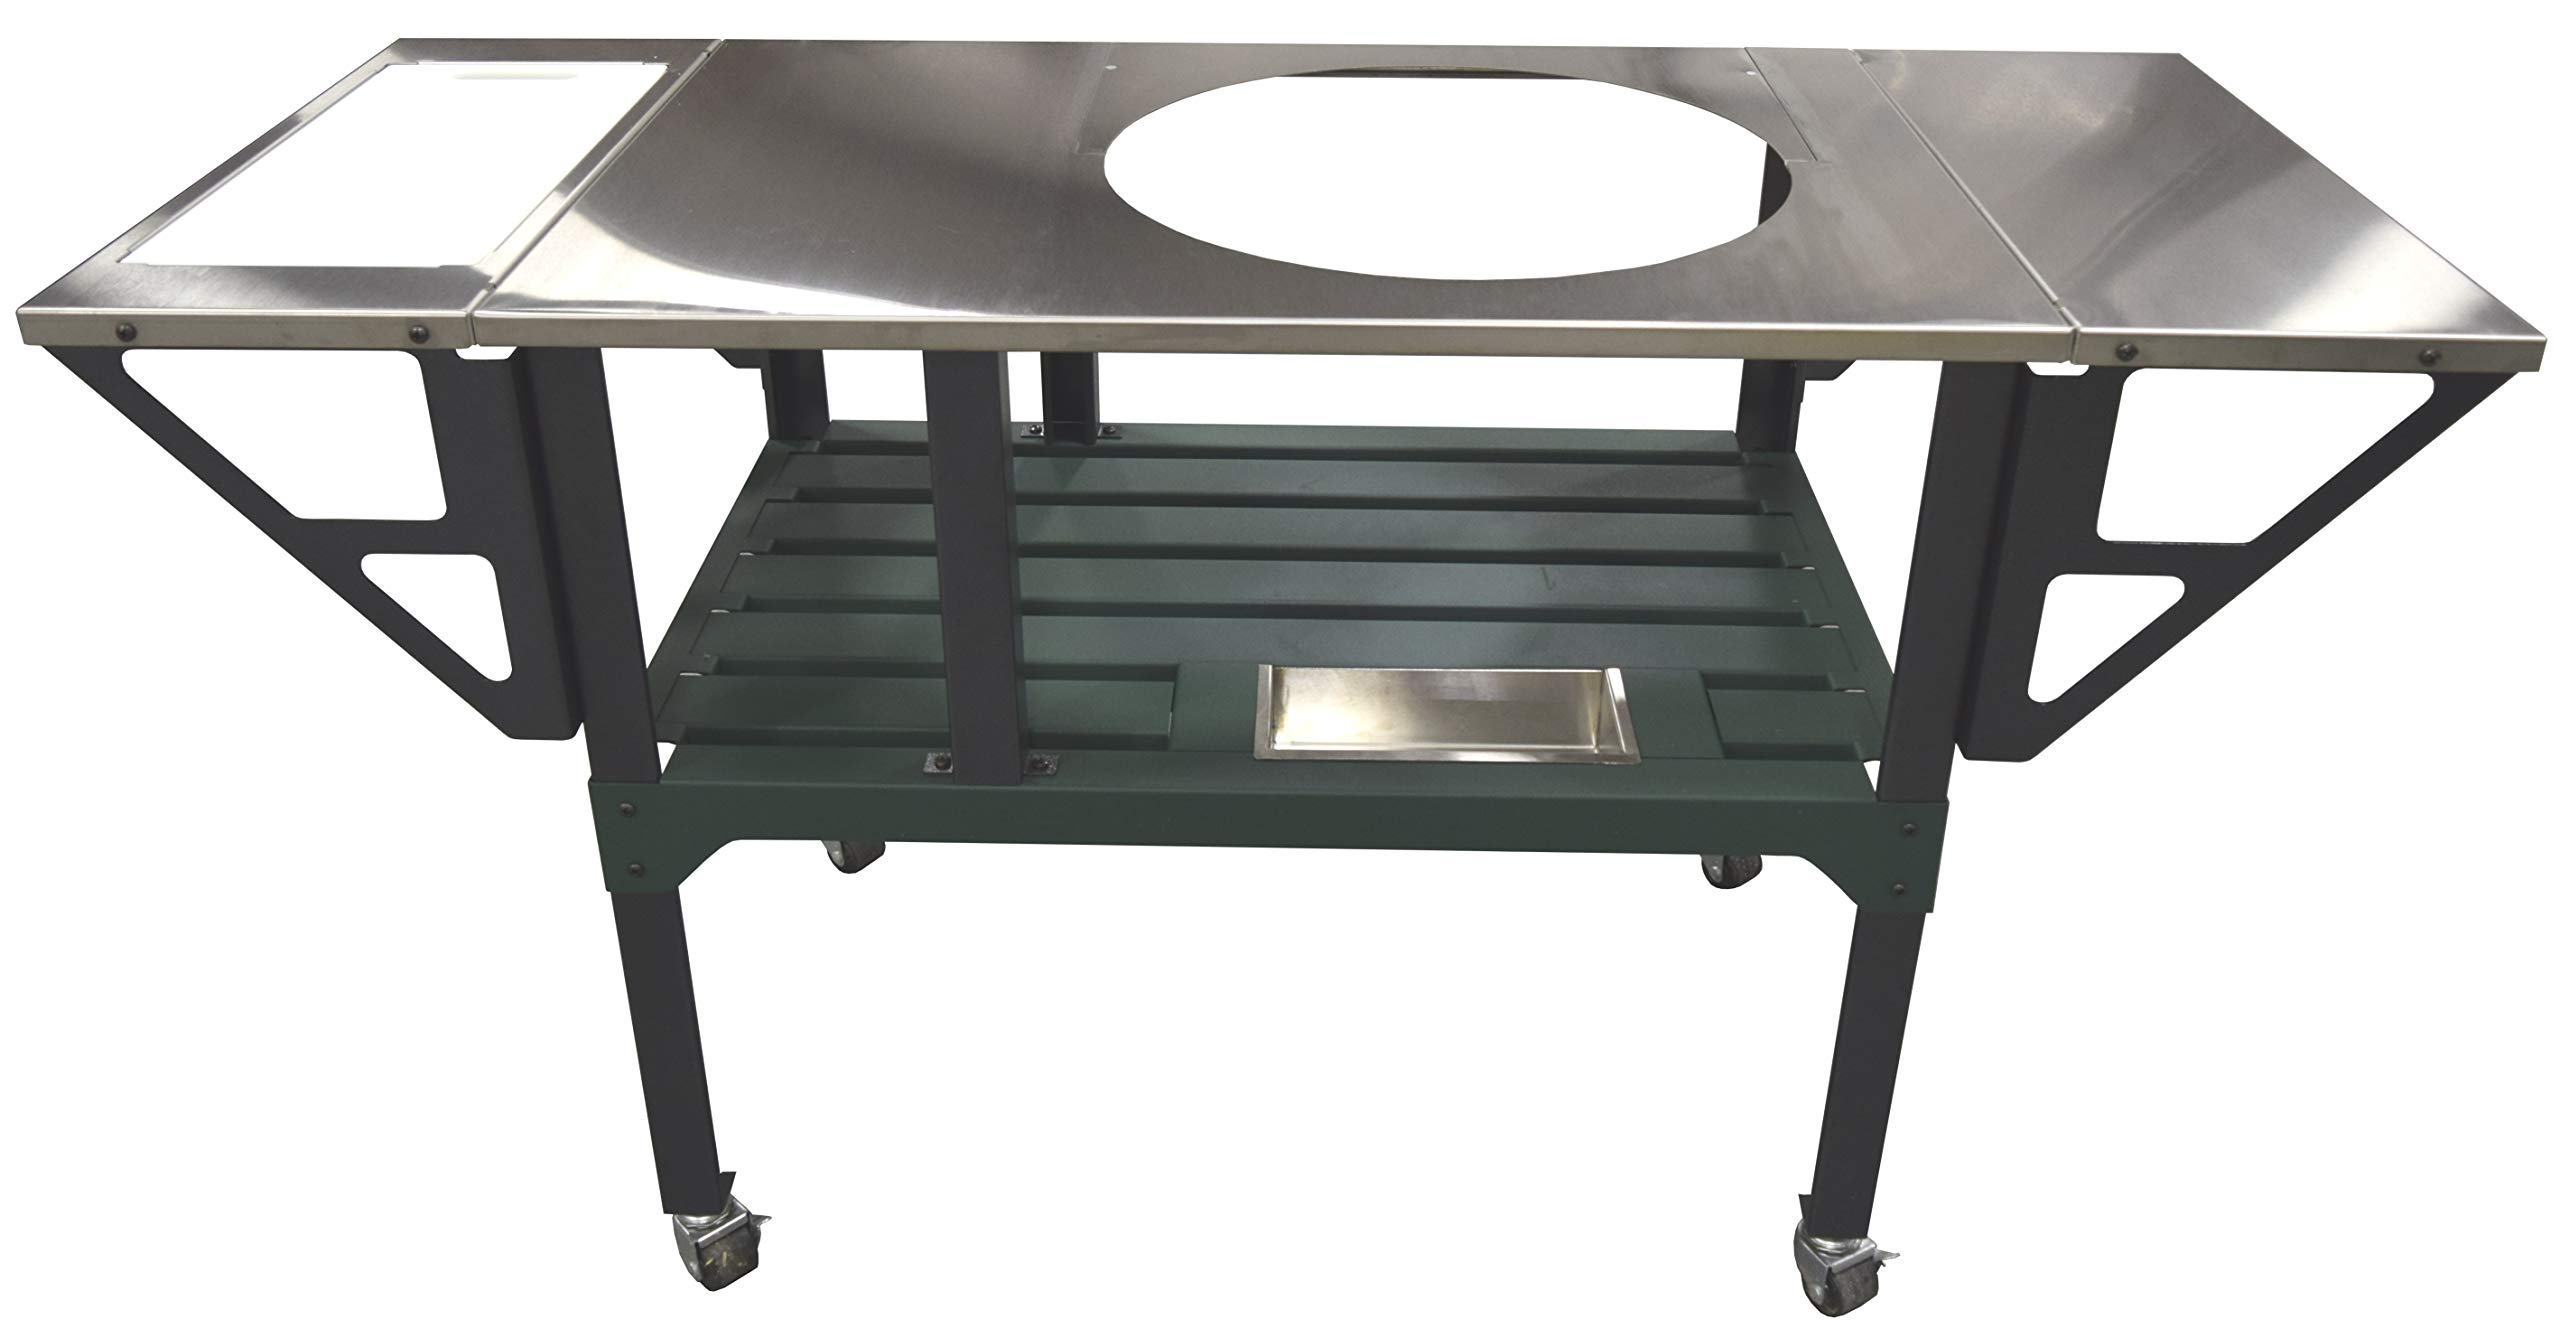 RMP Deluxe Universal Steel Grill Cart for Round Ceramic Grill, Fits a Large Big Green Egg Grill, Stainless Steel Finish Table Top, with Rotating and Locking Wheels